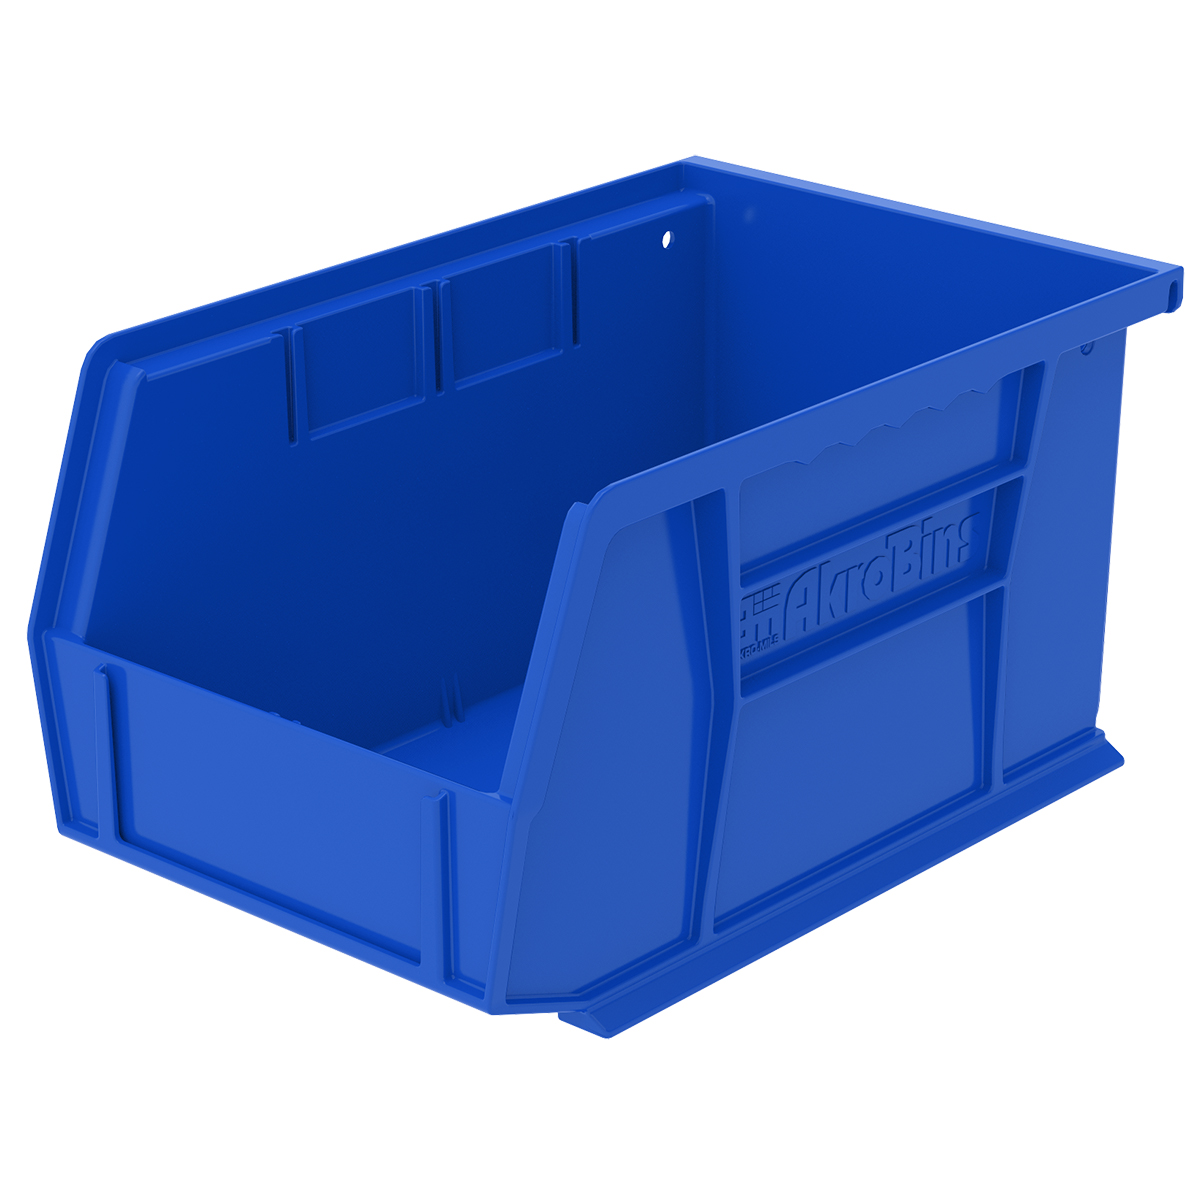 AkroBin 9-1/4 x 6 x 5, Blue (30237BLUE).  This item sold in carton quantities of 12.